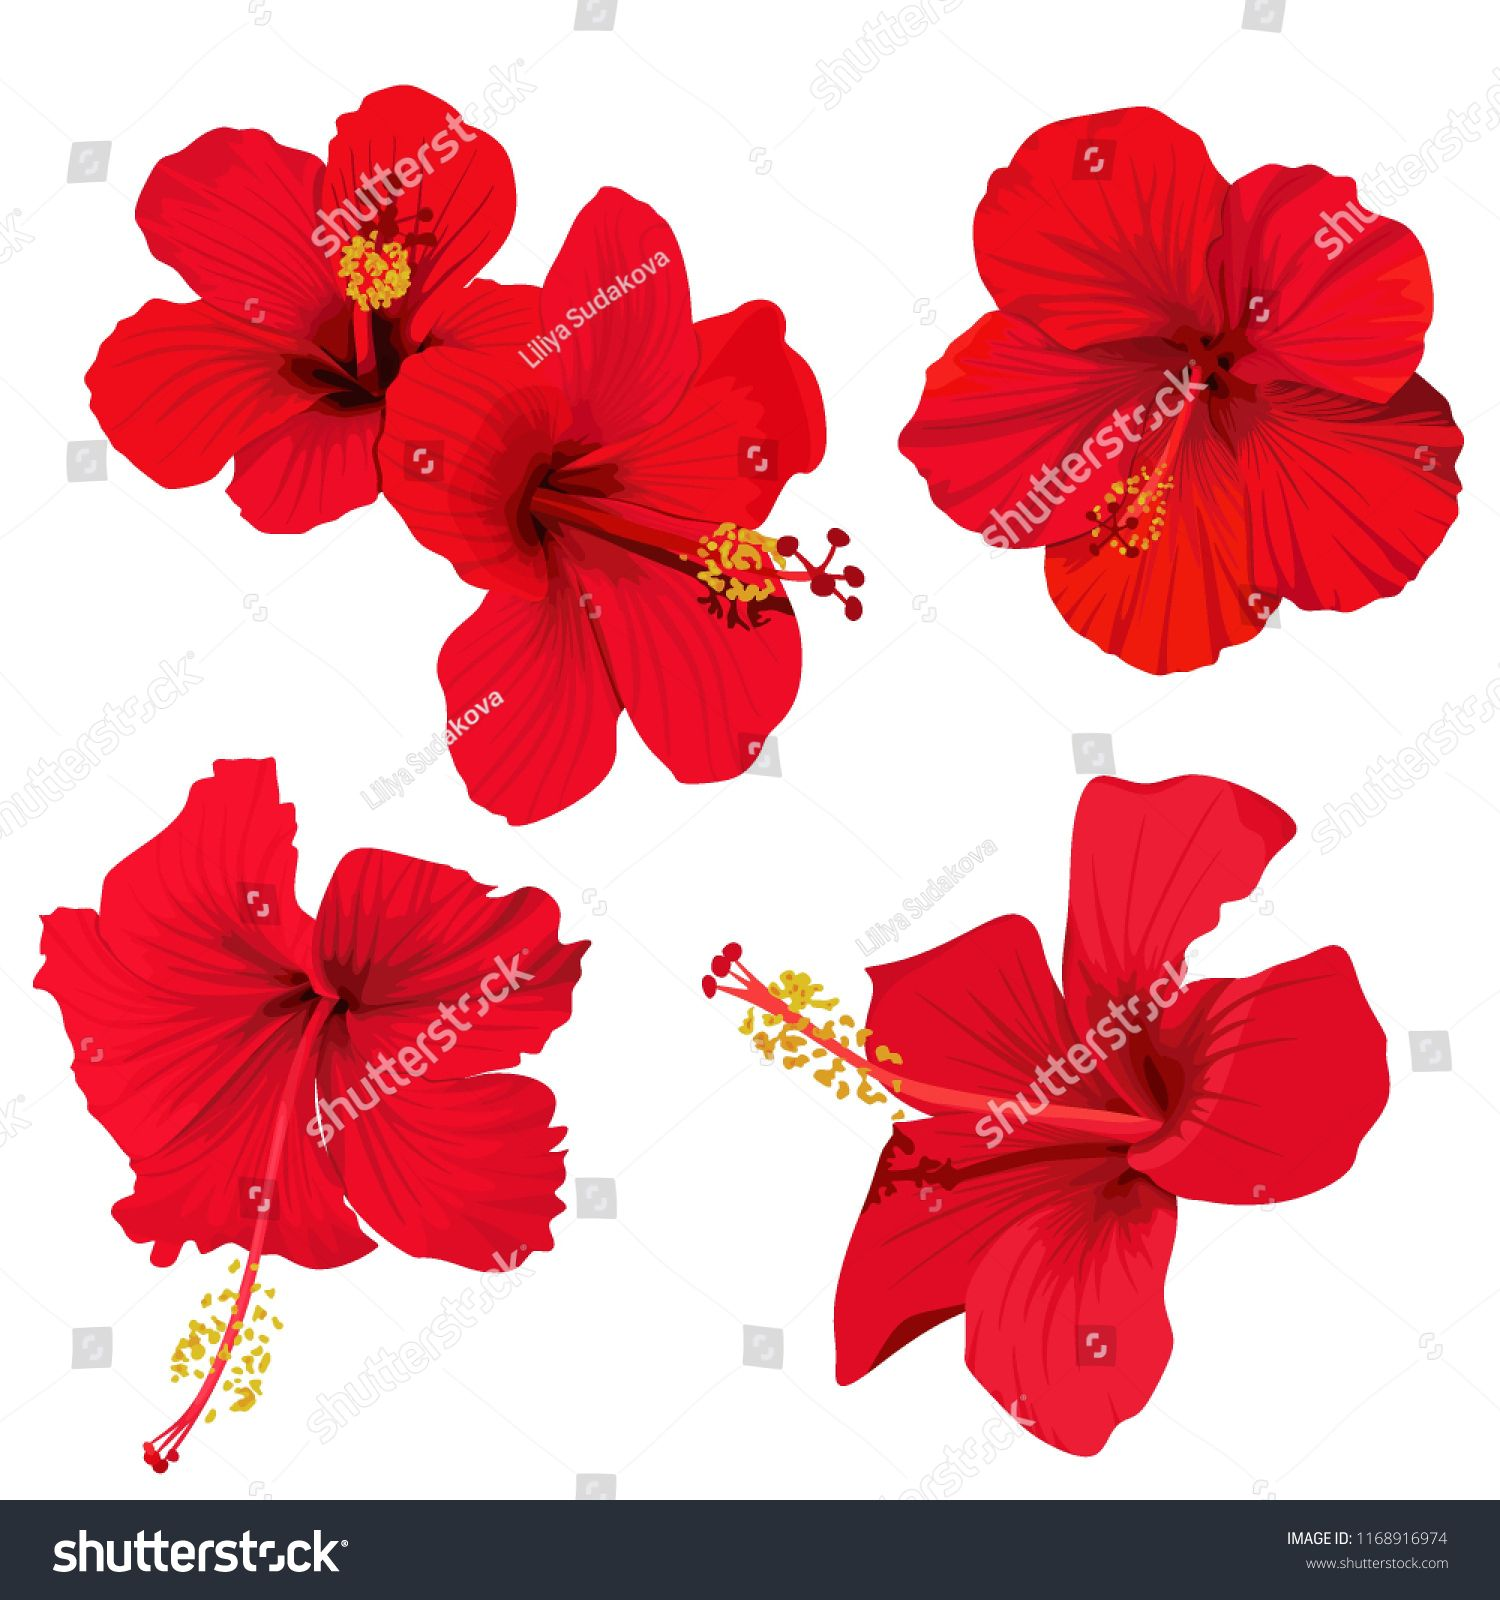 Hibiscus Flower Watercolor Style Overlay Free Image By Rawpixel Com Donlaya In 2020 Watercolor Flowers Flower Drawing Hibiscus Flowers